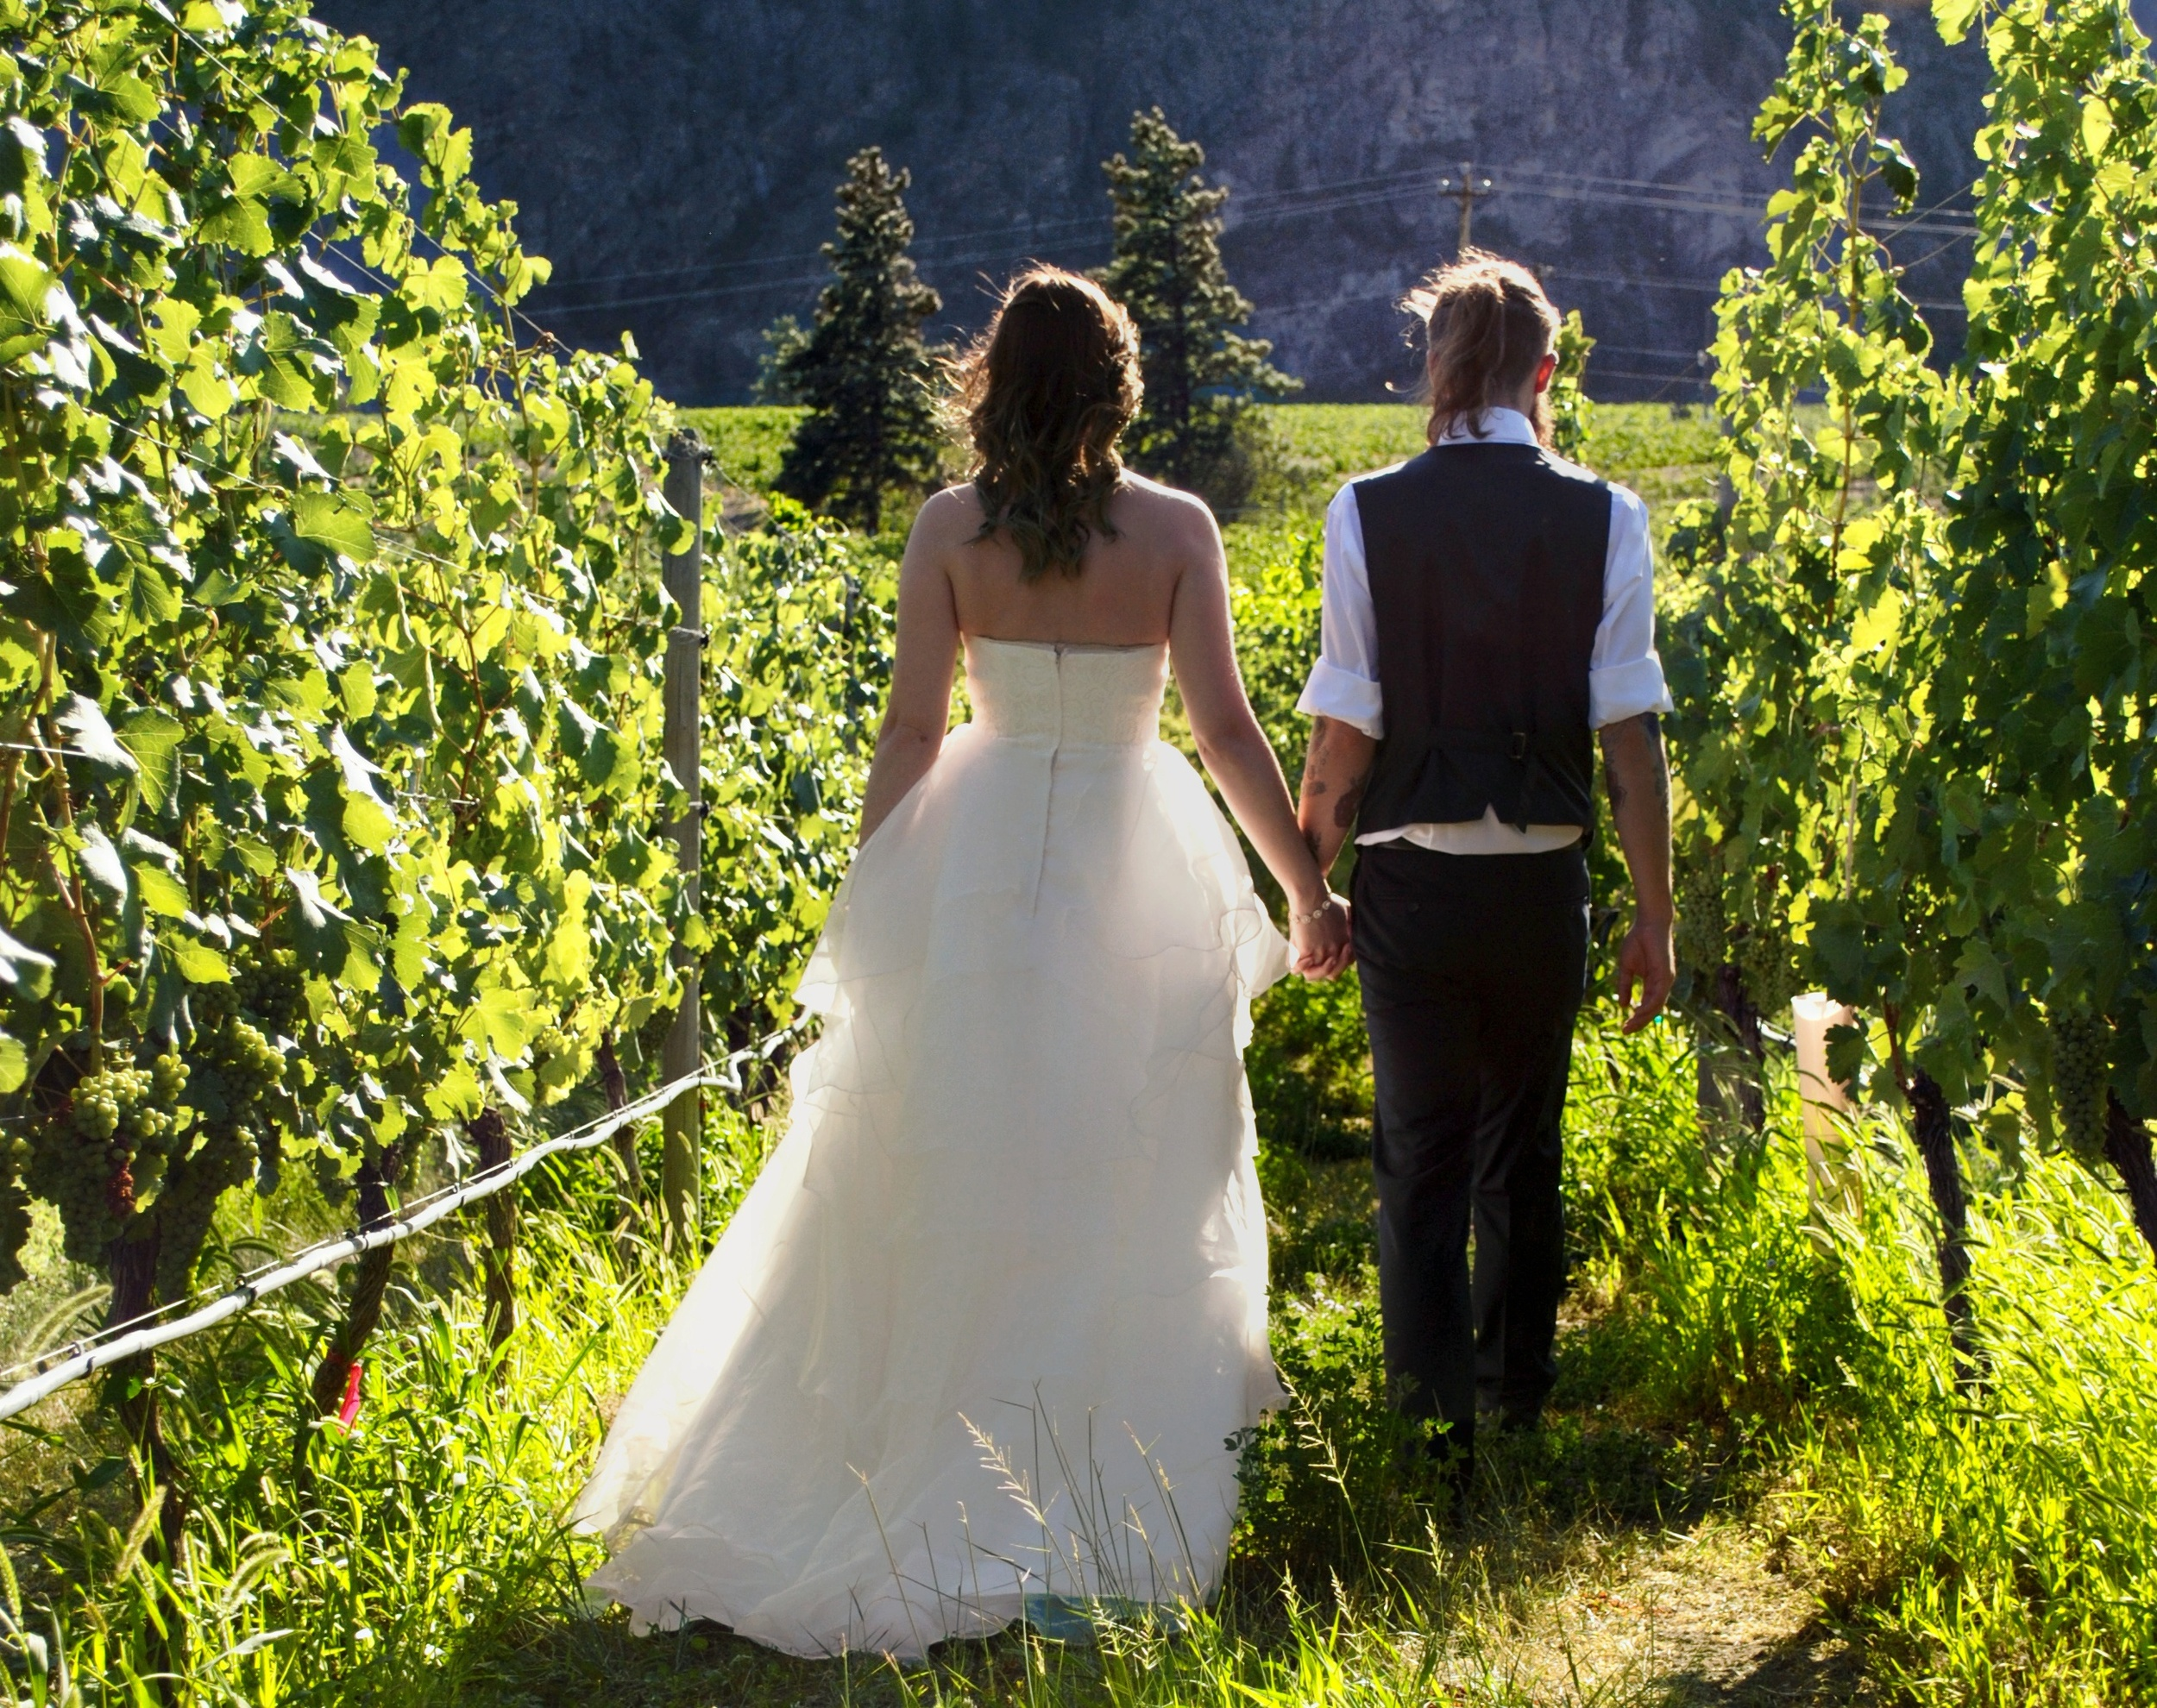 Fisher Wedding Vineyard - jesuisley.com